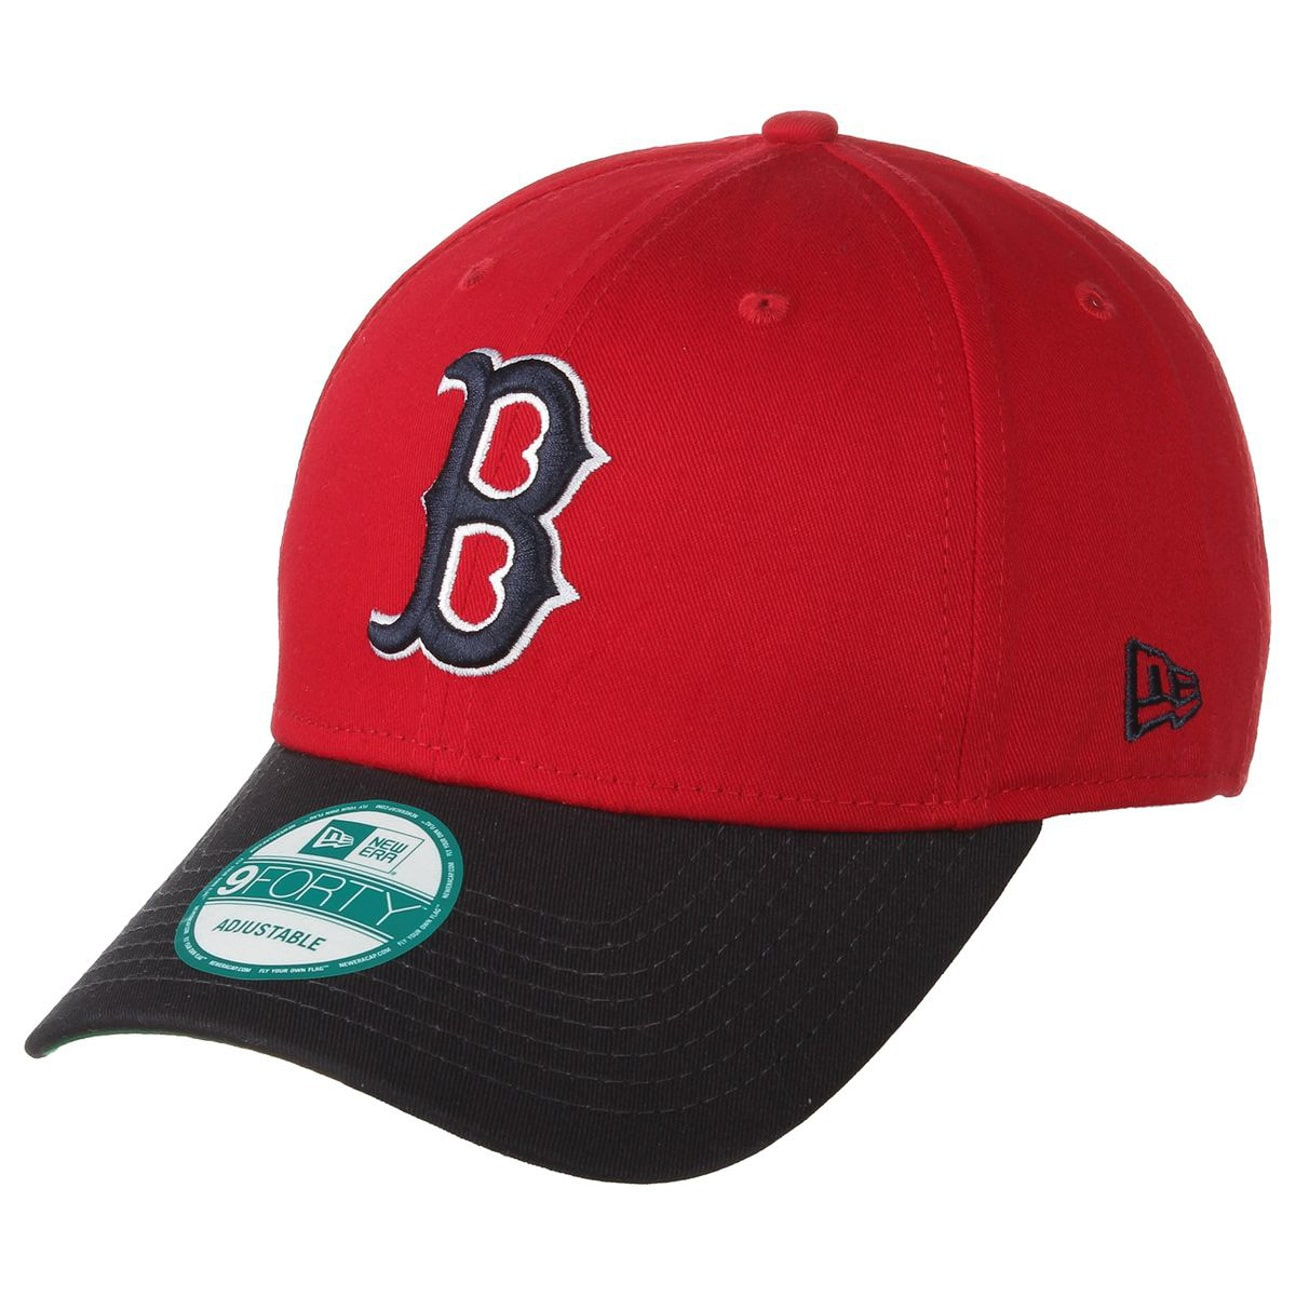 9Forty Boston Red Sox Cap by New Era - 14,95 € 8e2699bd74c7